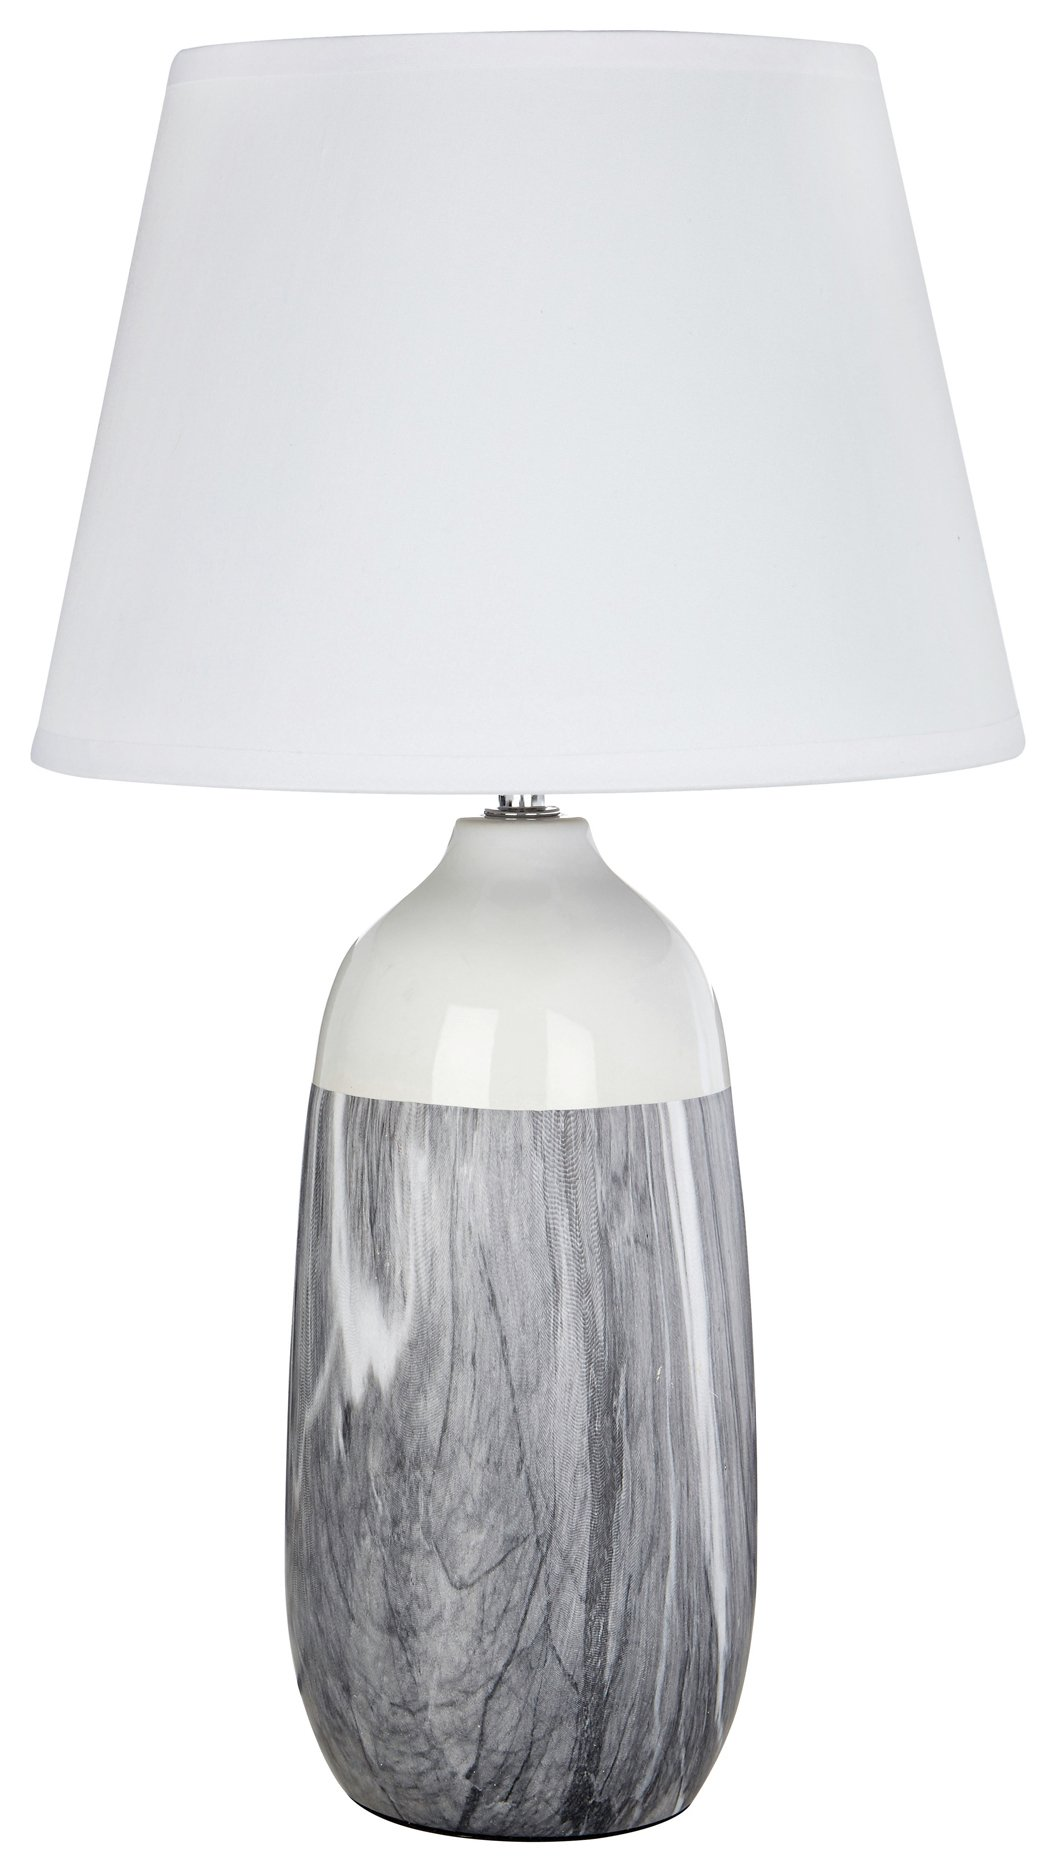 Image of Welma - Ceramic - Table Lamp - Grey